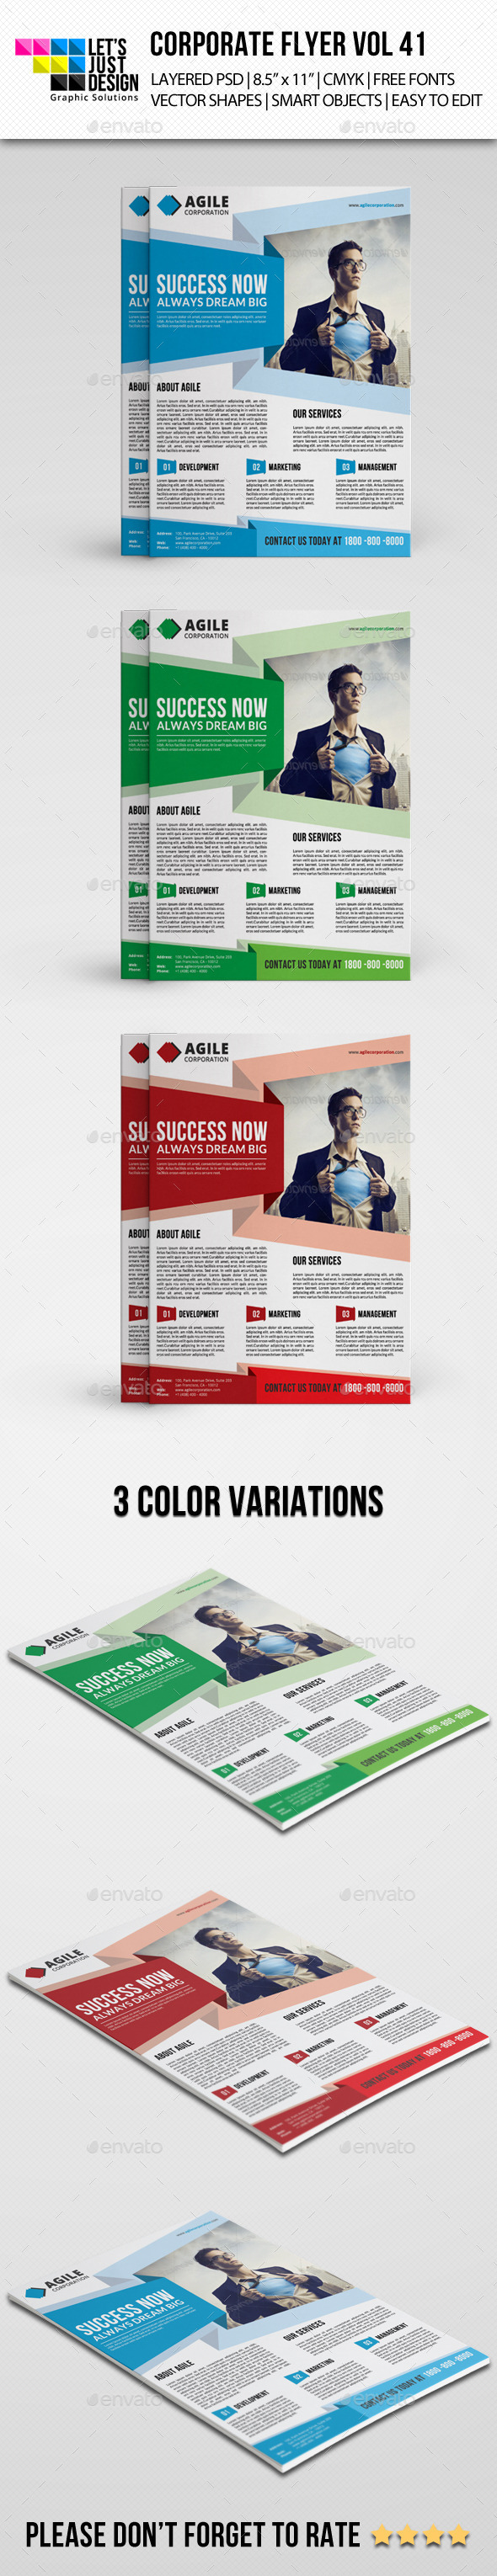 Corporate Flyer Template Vol 41 - Corporate Flyers